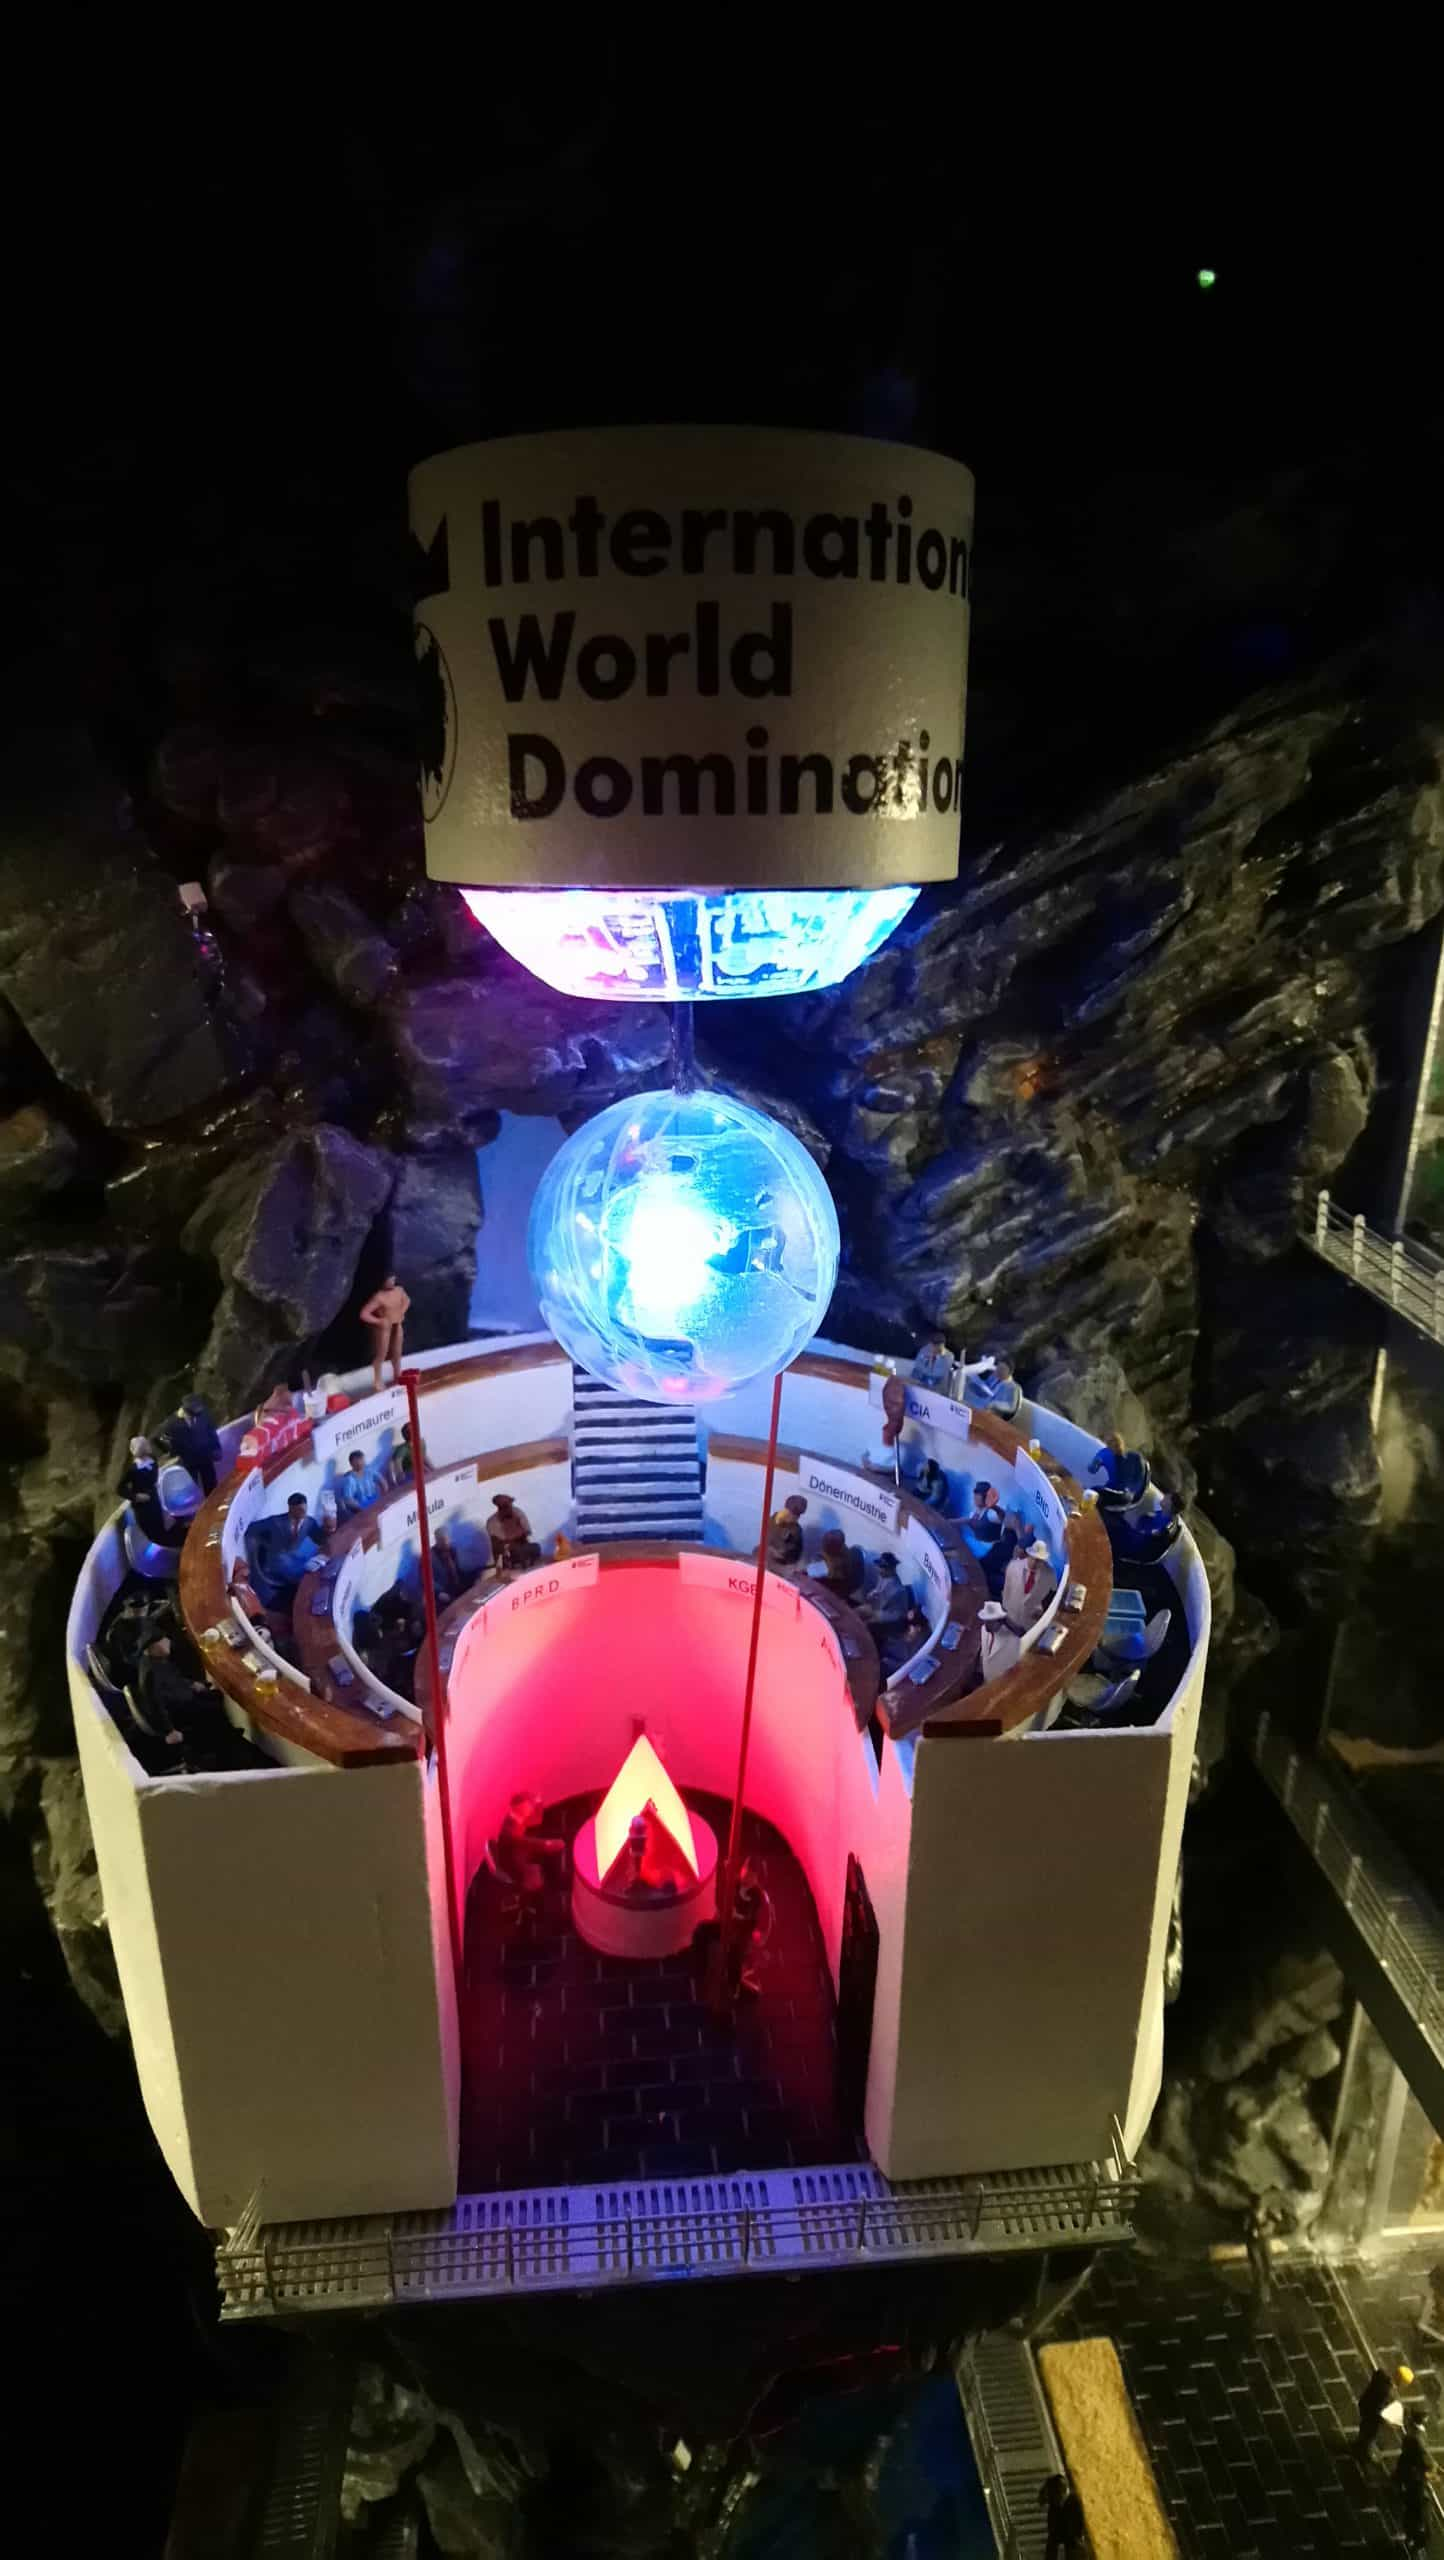 Hamburg's Miniature World is one of the best quirky museums in the world. This is the World Domination League